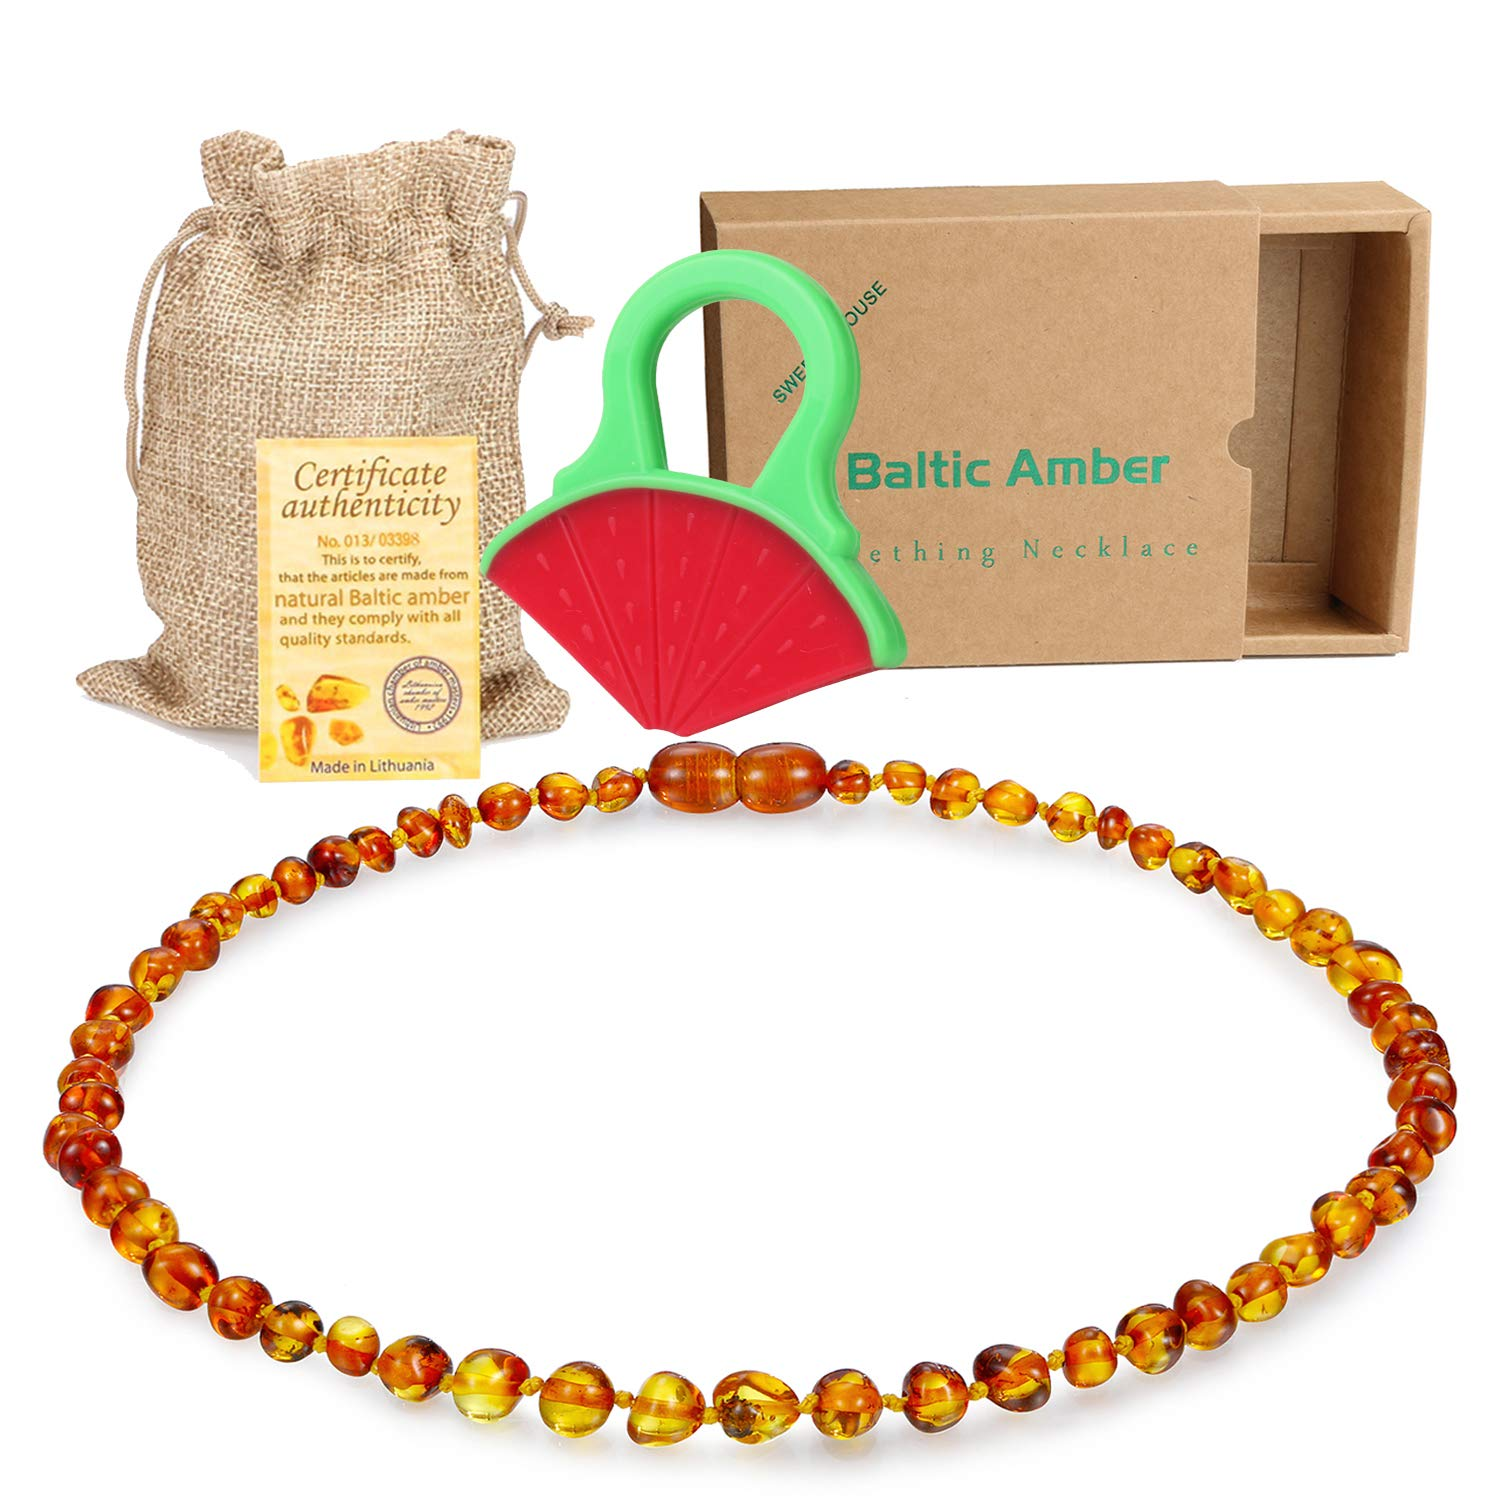 Raw Baltic Baby Amber Teething Necklace - (Cognac) Anti-Flammatory, Drooling & Free Teething Toy Pain Reduce - Reduces Tension and Fear, Teething Necklace for 3 to 36 Months Babies,Boys and Girls